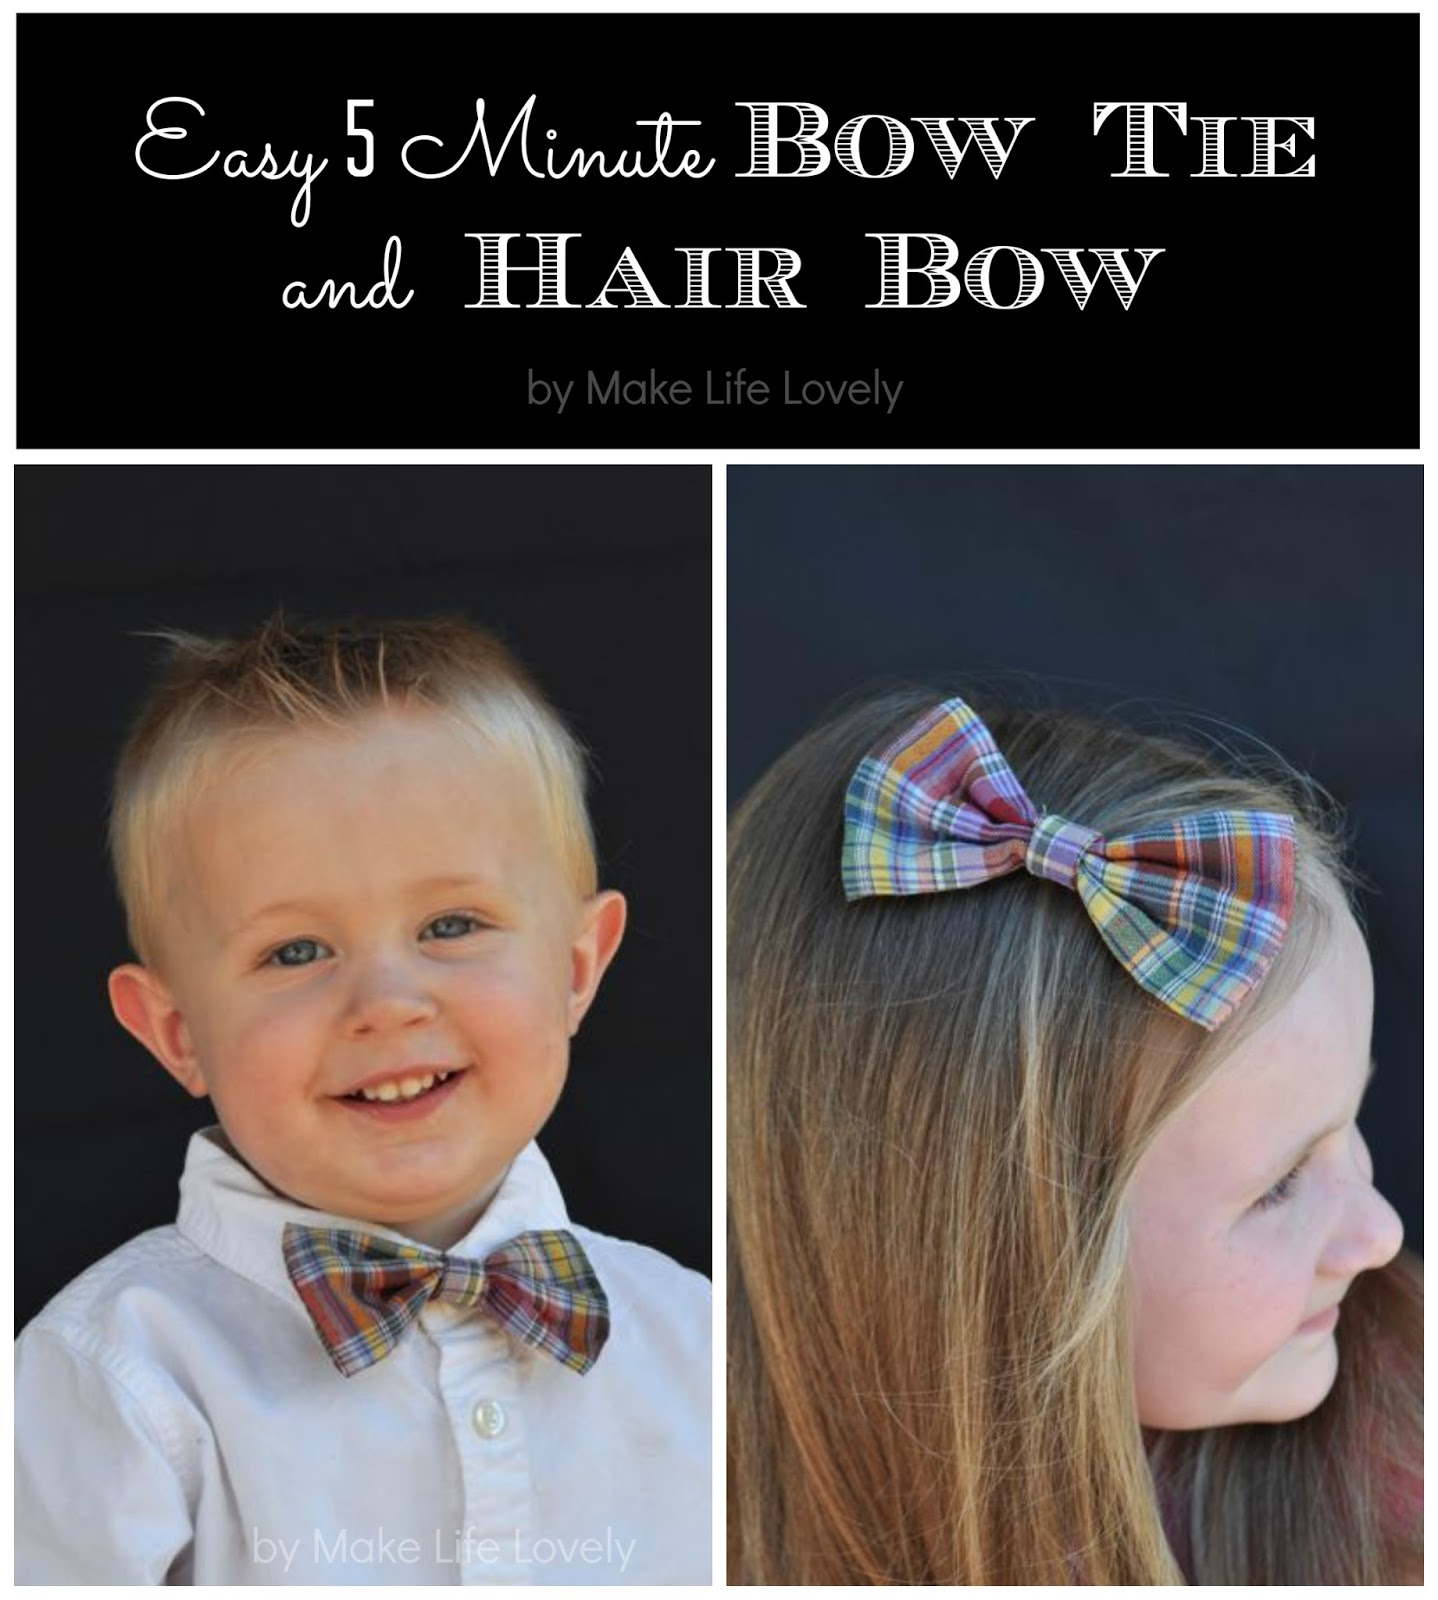 Macys baby hair accessories - I Can T Wait To Show Off This Little Guy In One Of His New Bow Ties On Sunday At Church All The Little Ladies Had Better Watch Out For This Heart Breaker